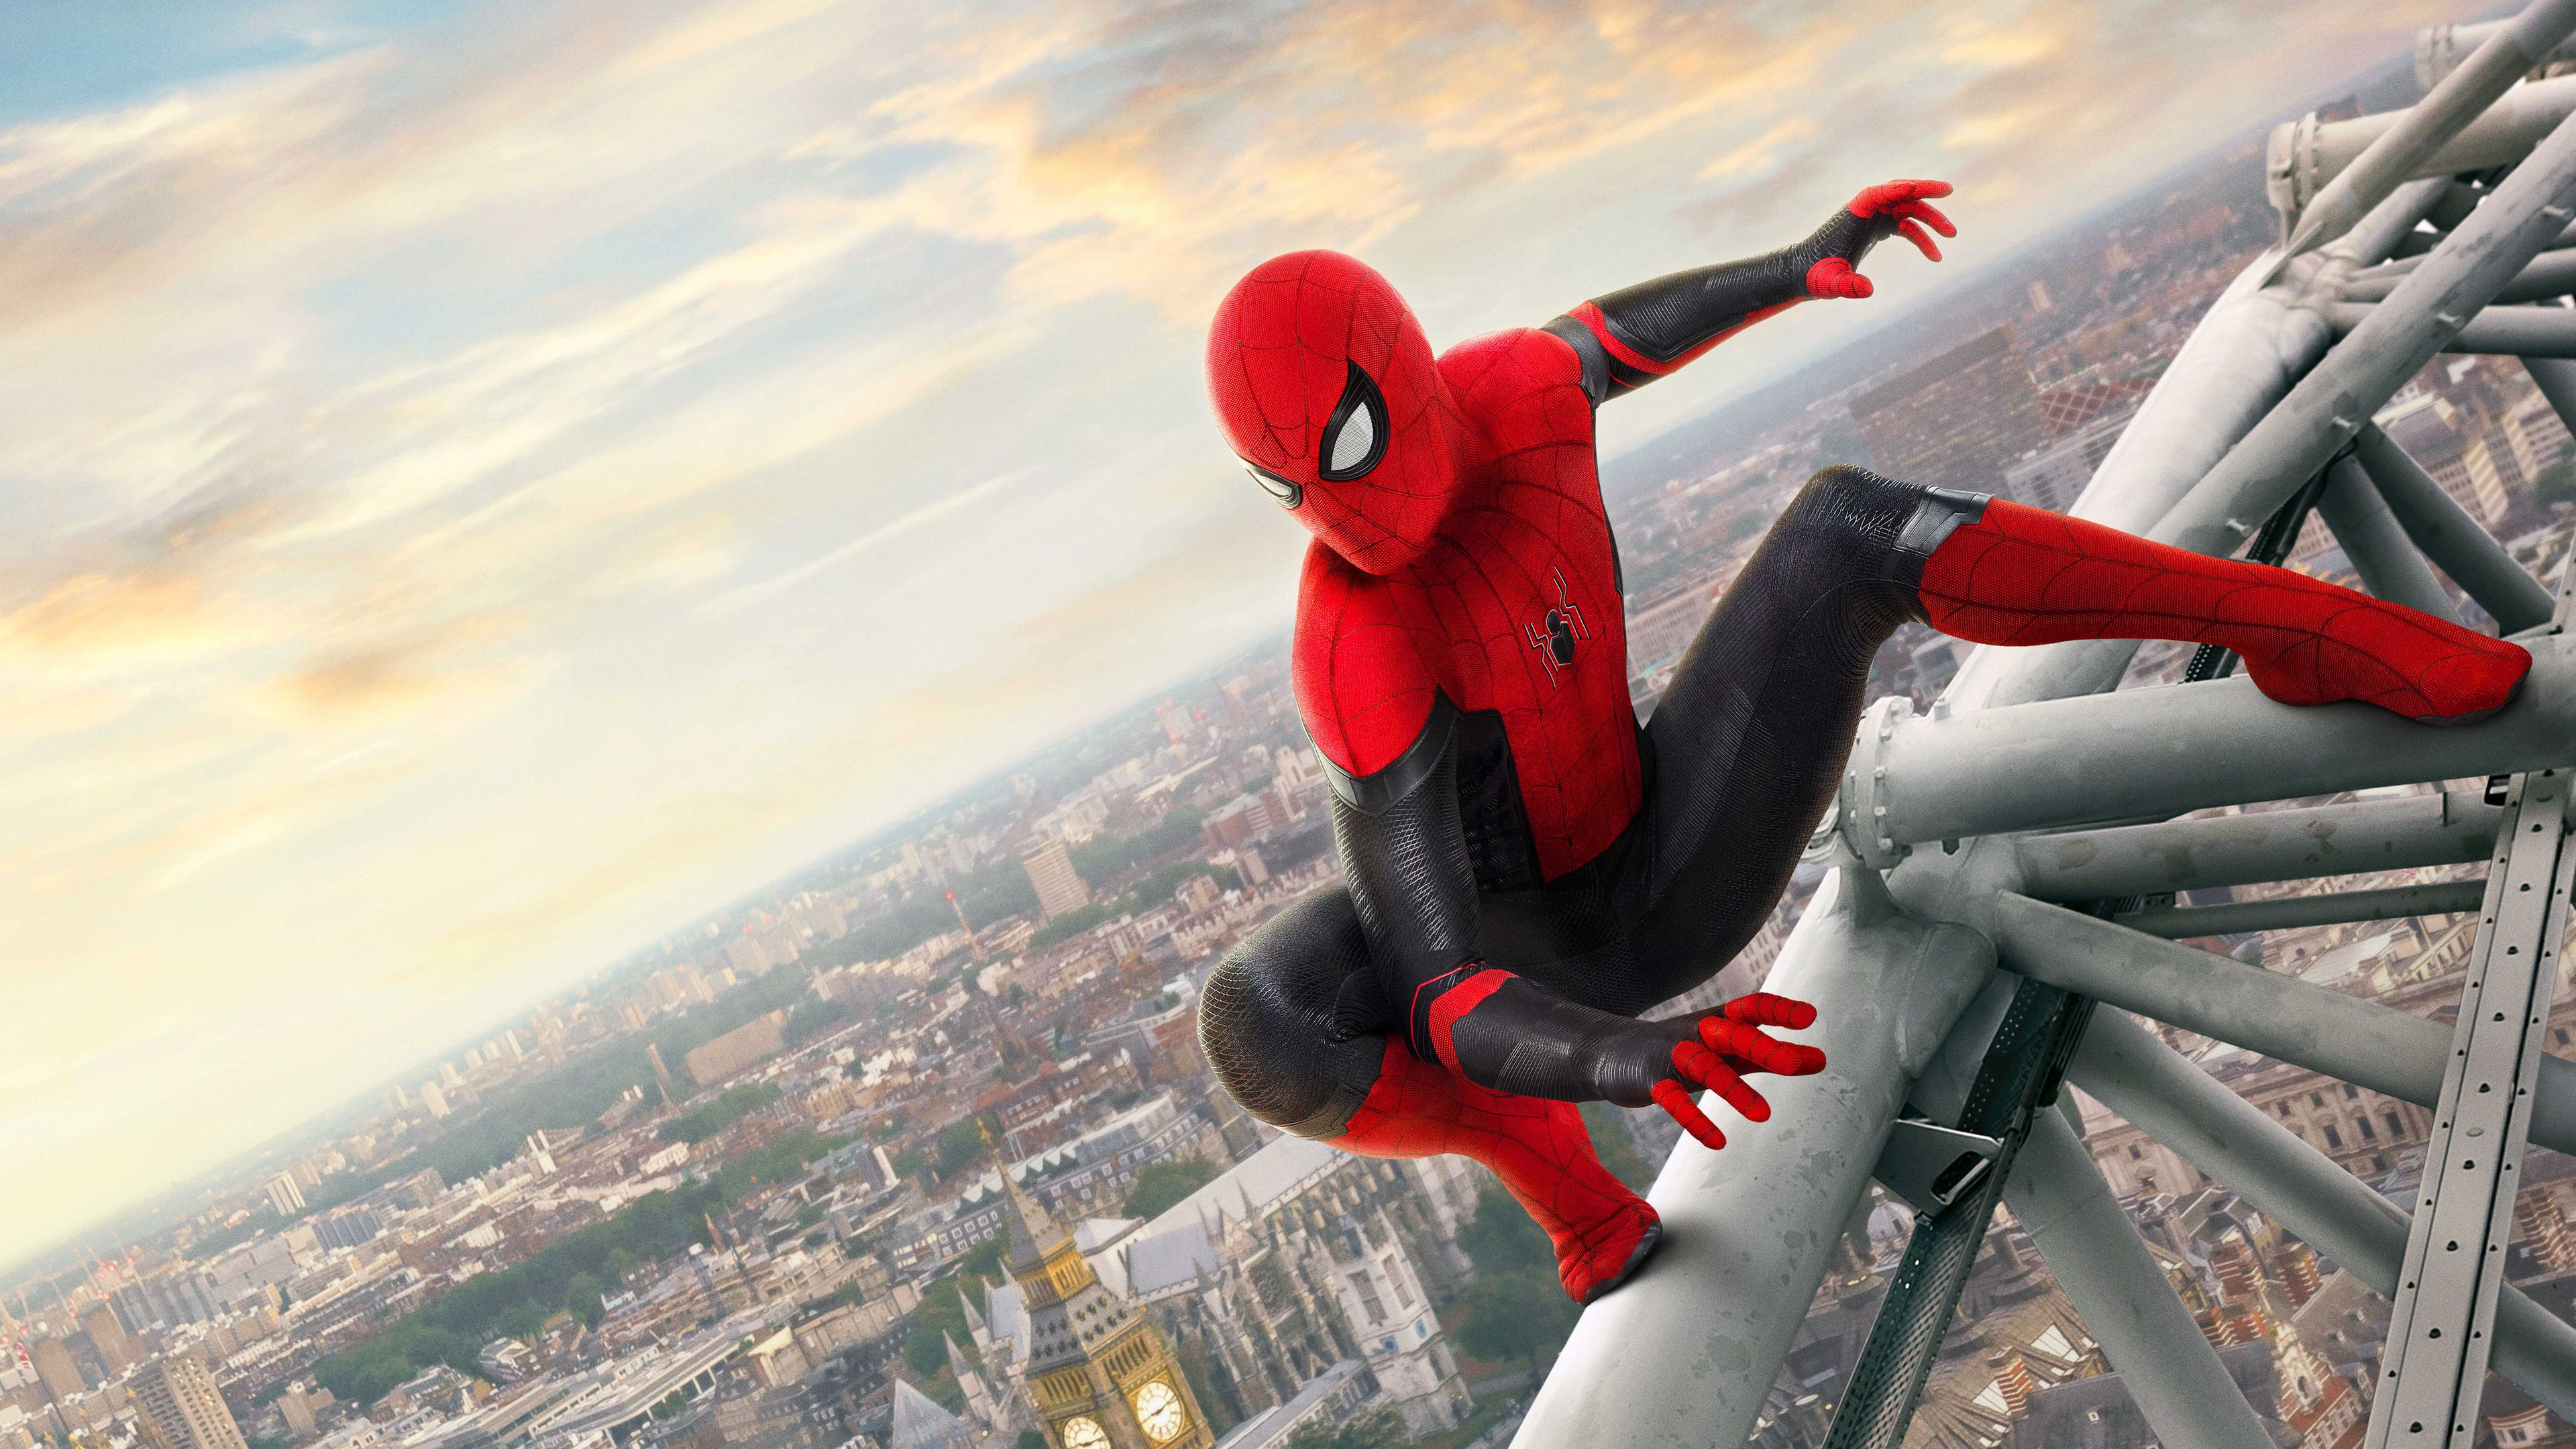 Spider Man Far From Home 2019 4k Tom Holland Wallpapers Superheroes Wallpapers Spiderman Wallpapers Spiderman F Upcoming Marvel Movies Spiderman Tom Holland